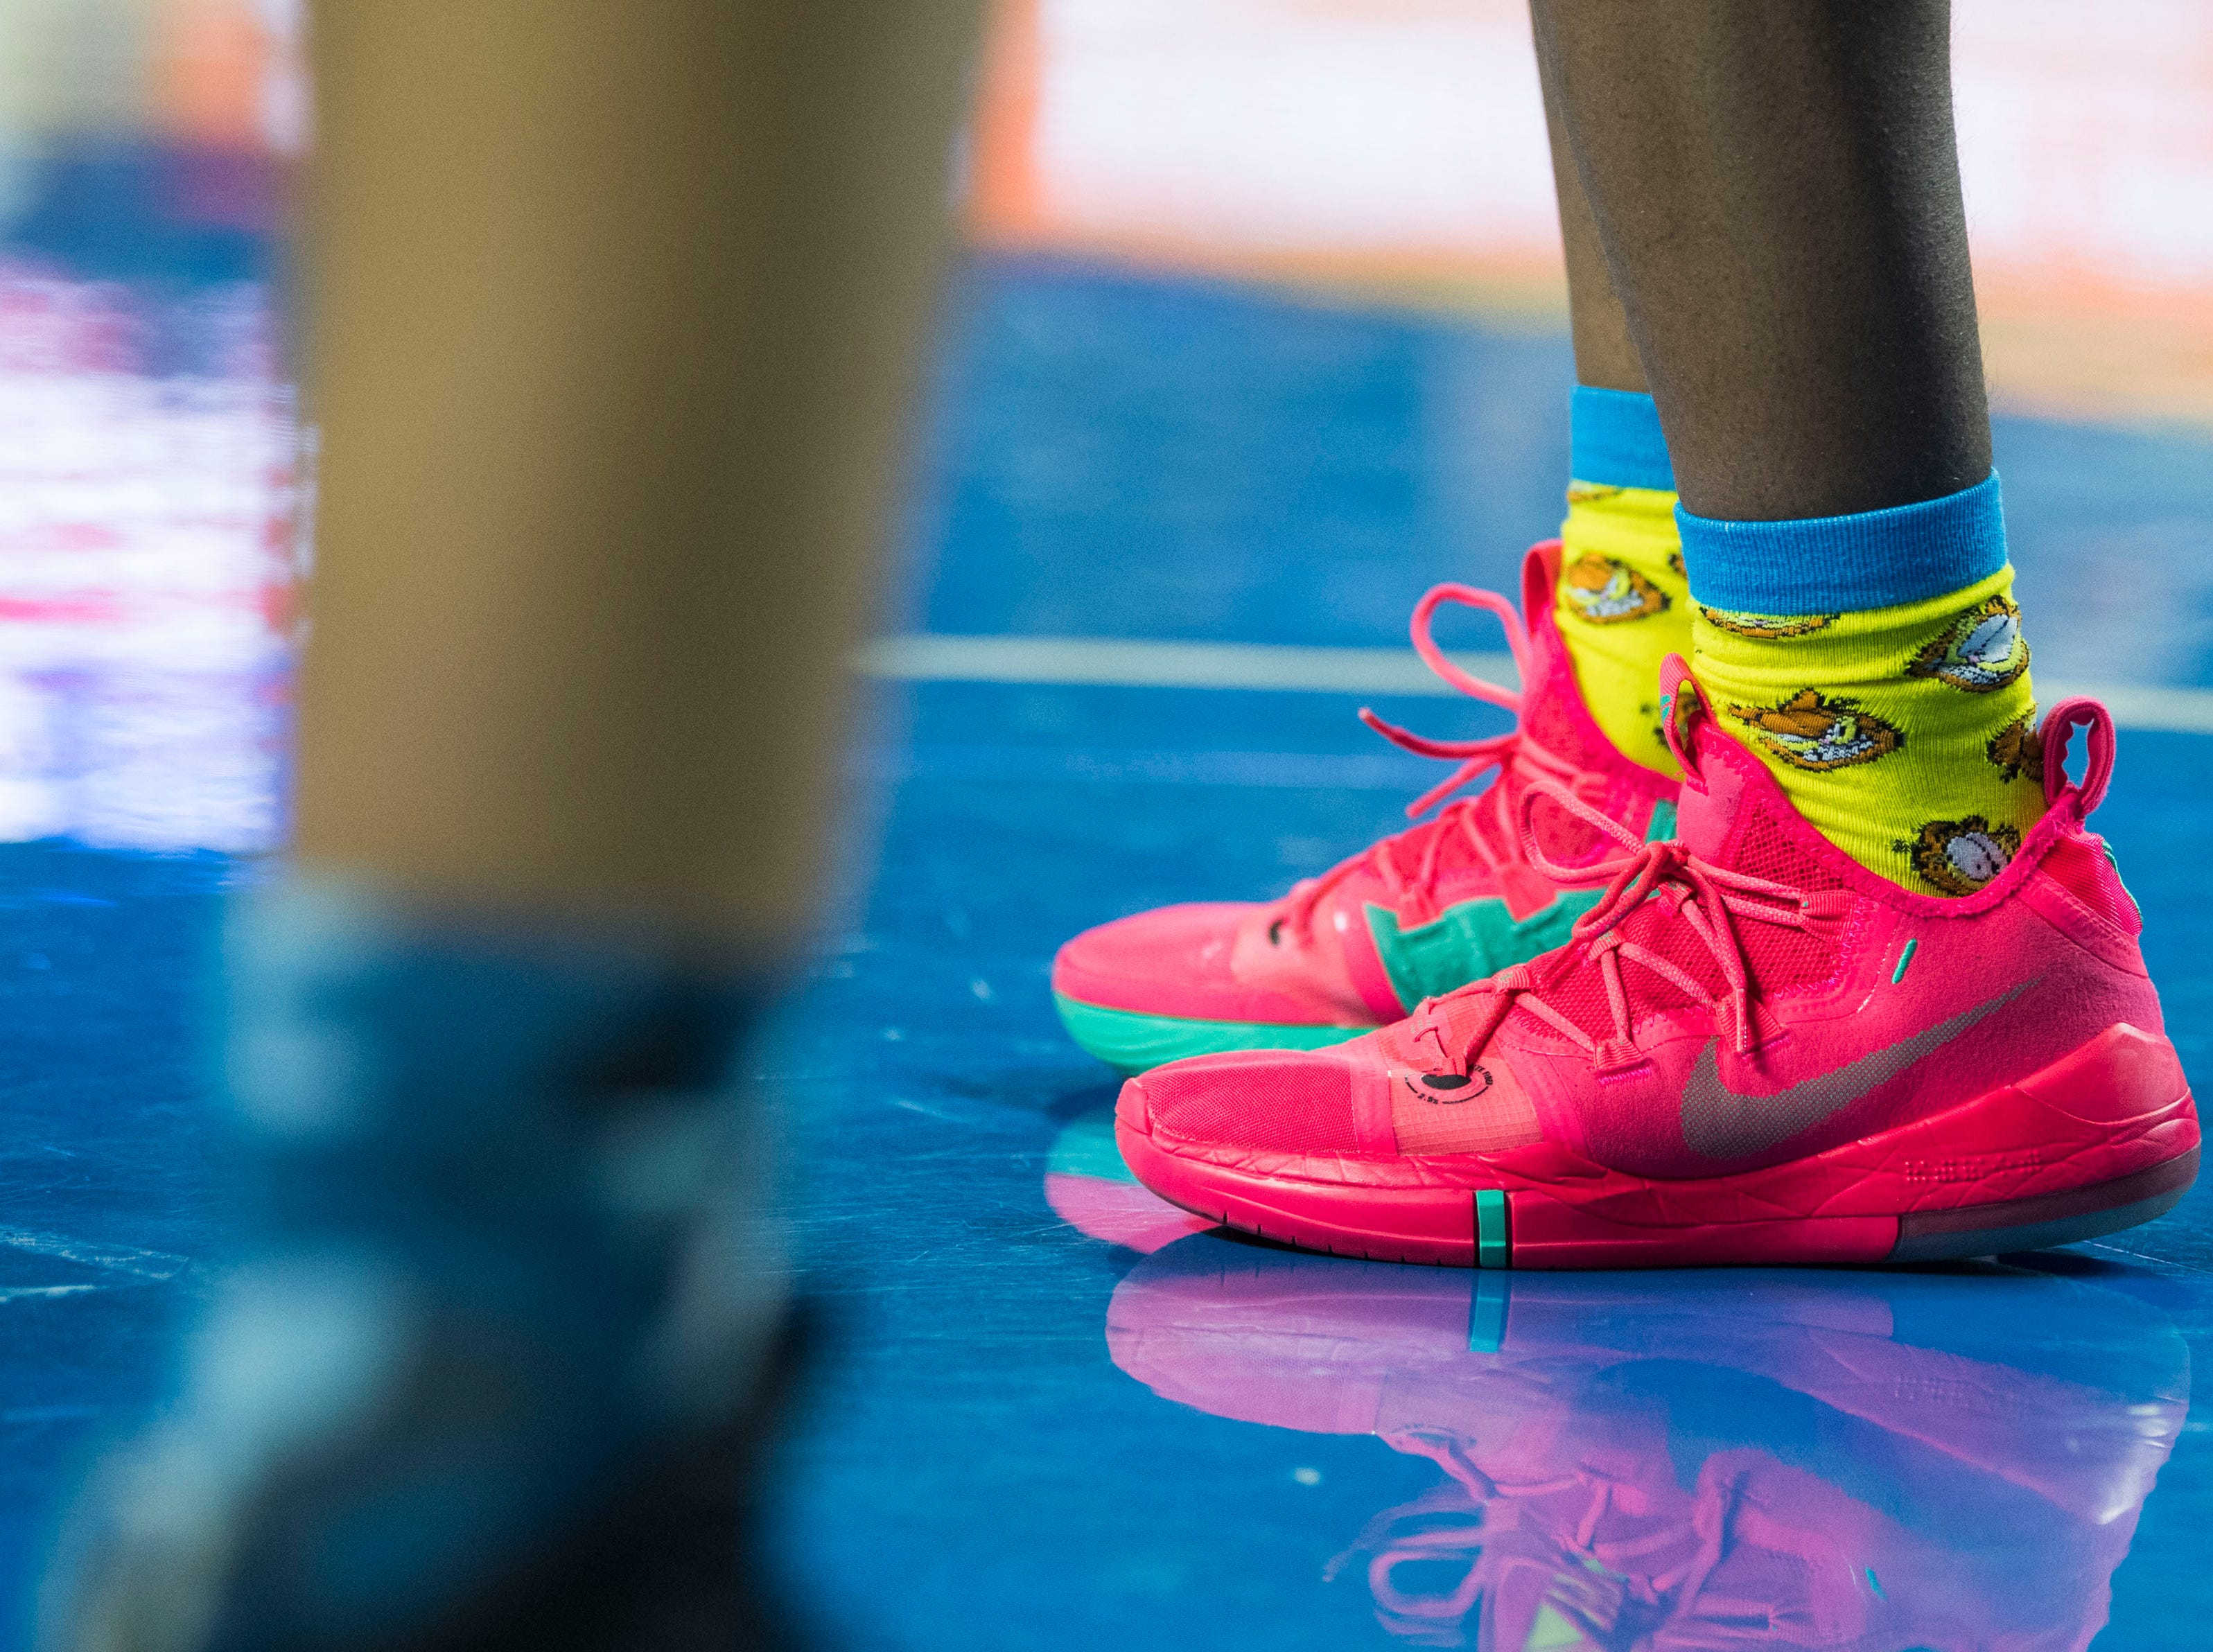 An East Nashville player wears colorful shoes during a TSSAA AA state semifinal game between East Nashville and Fulton at the Murphy Center in Murfreesboro, Friday, March 15, 2019. Fulton defeated East Nashville 66-55.